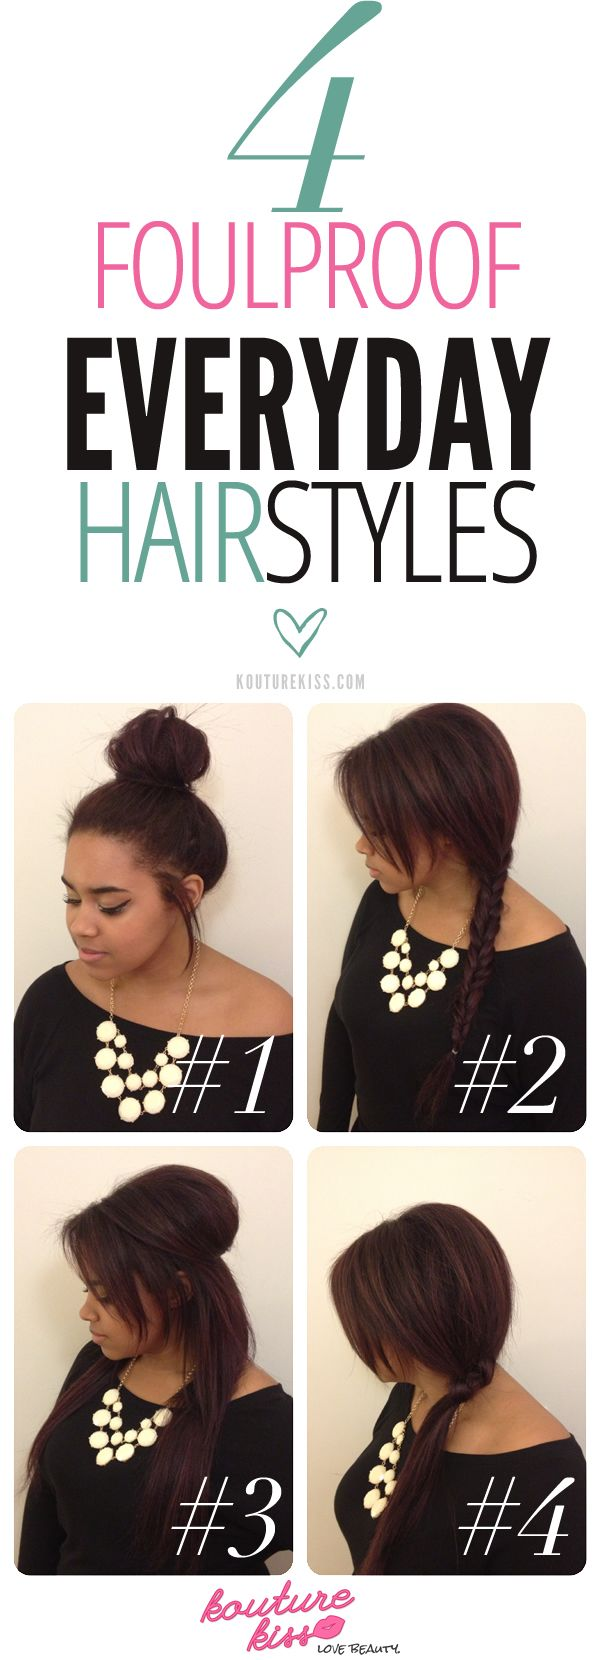 Astonishing 1000 Images About Hair On Pinterest Back To School Hairstyles Short Hairstyles For Black Women Fulllsitofus